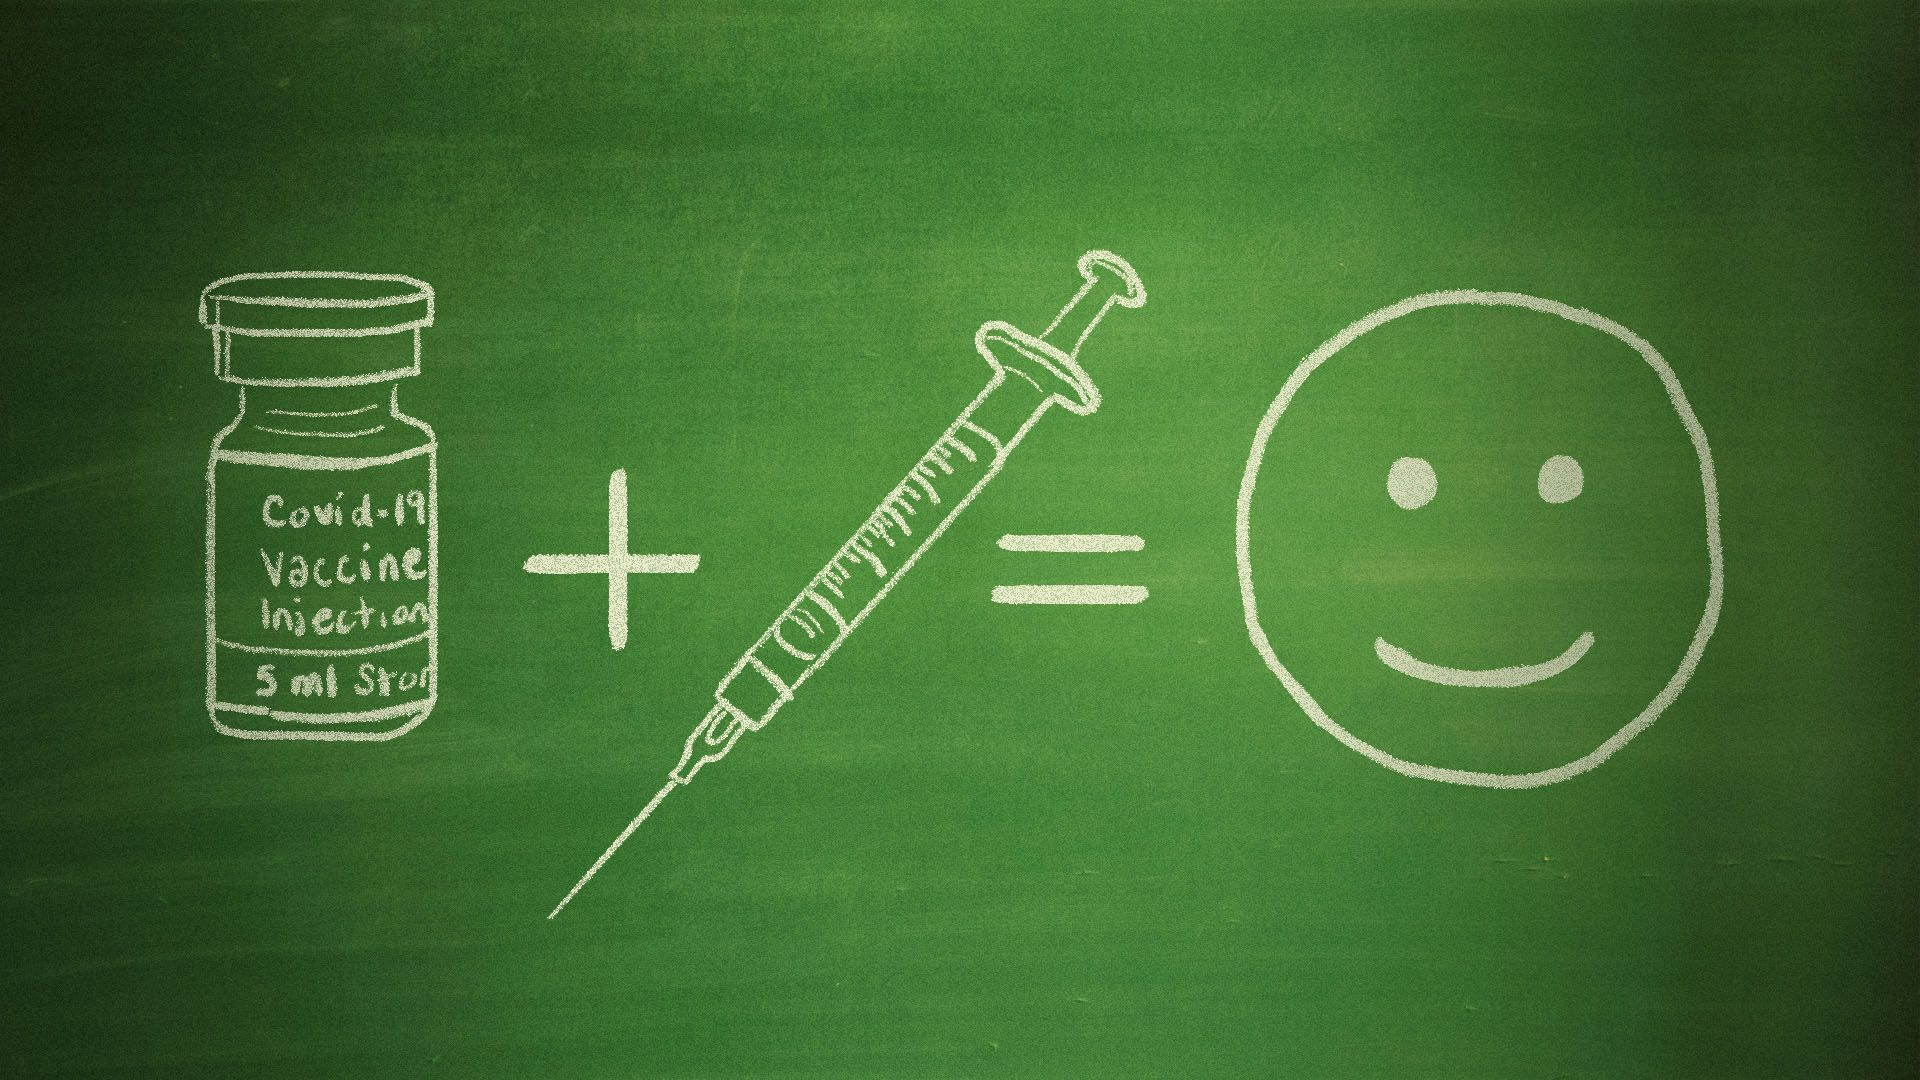 Illustration of a chalkboard with a an equation featuring the covid vaccine plus a syringe equals a smiley face